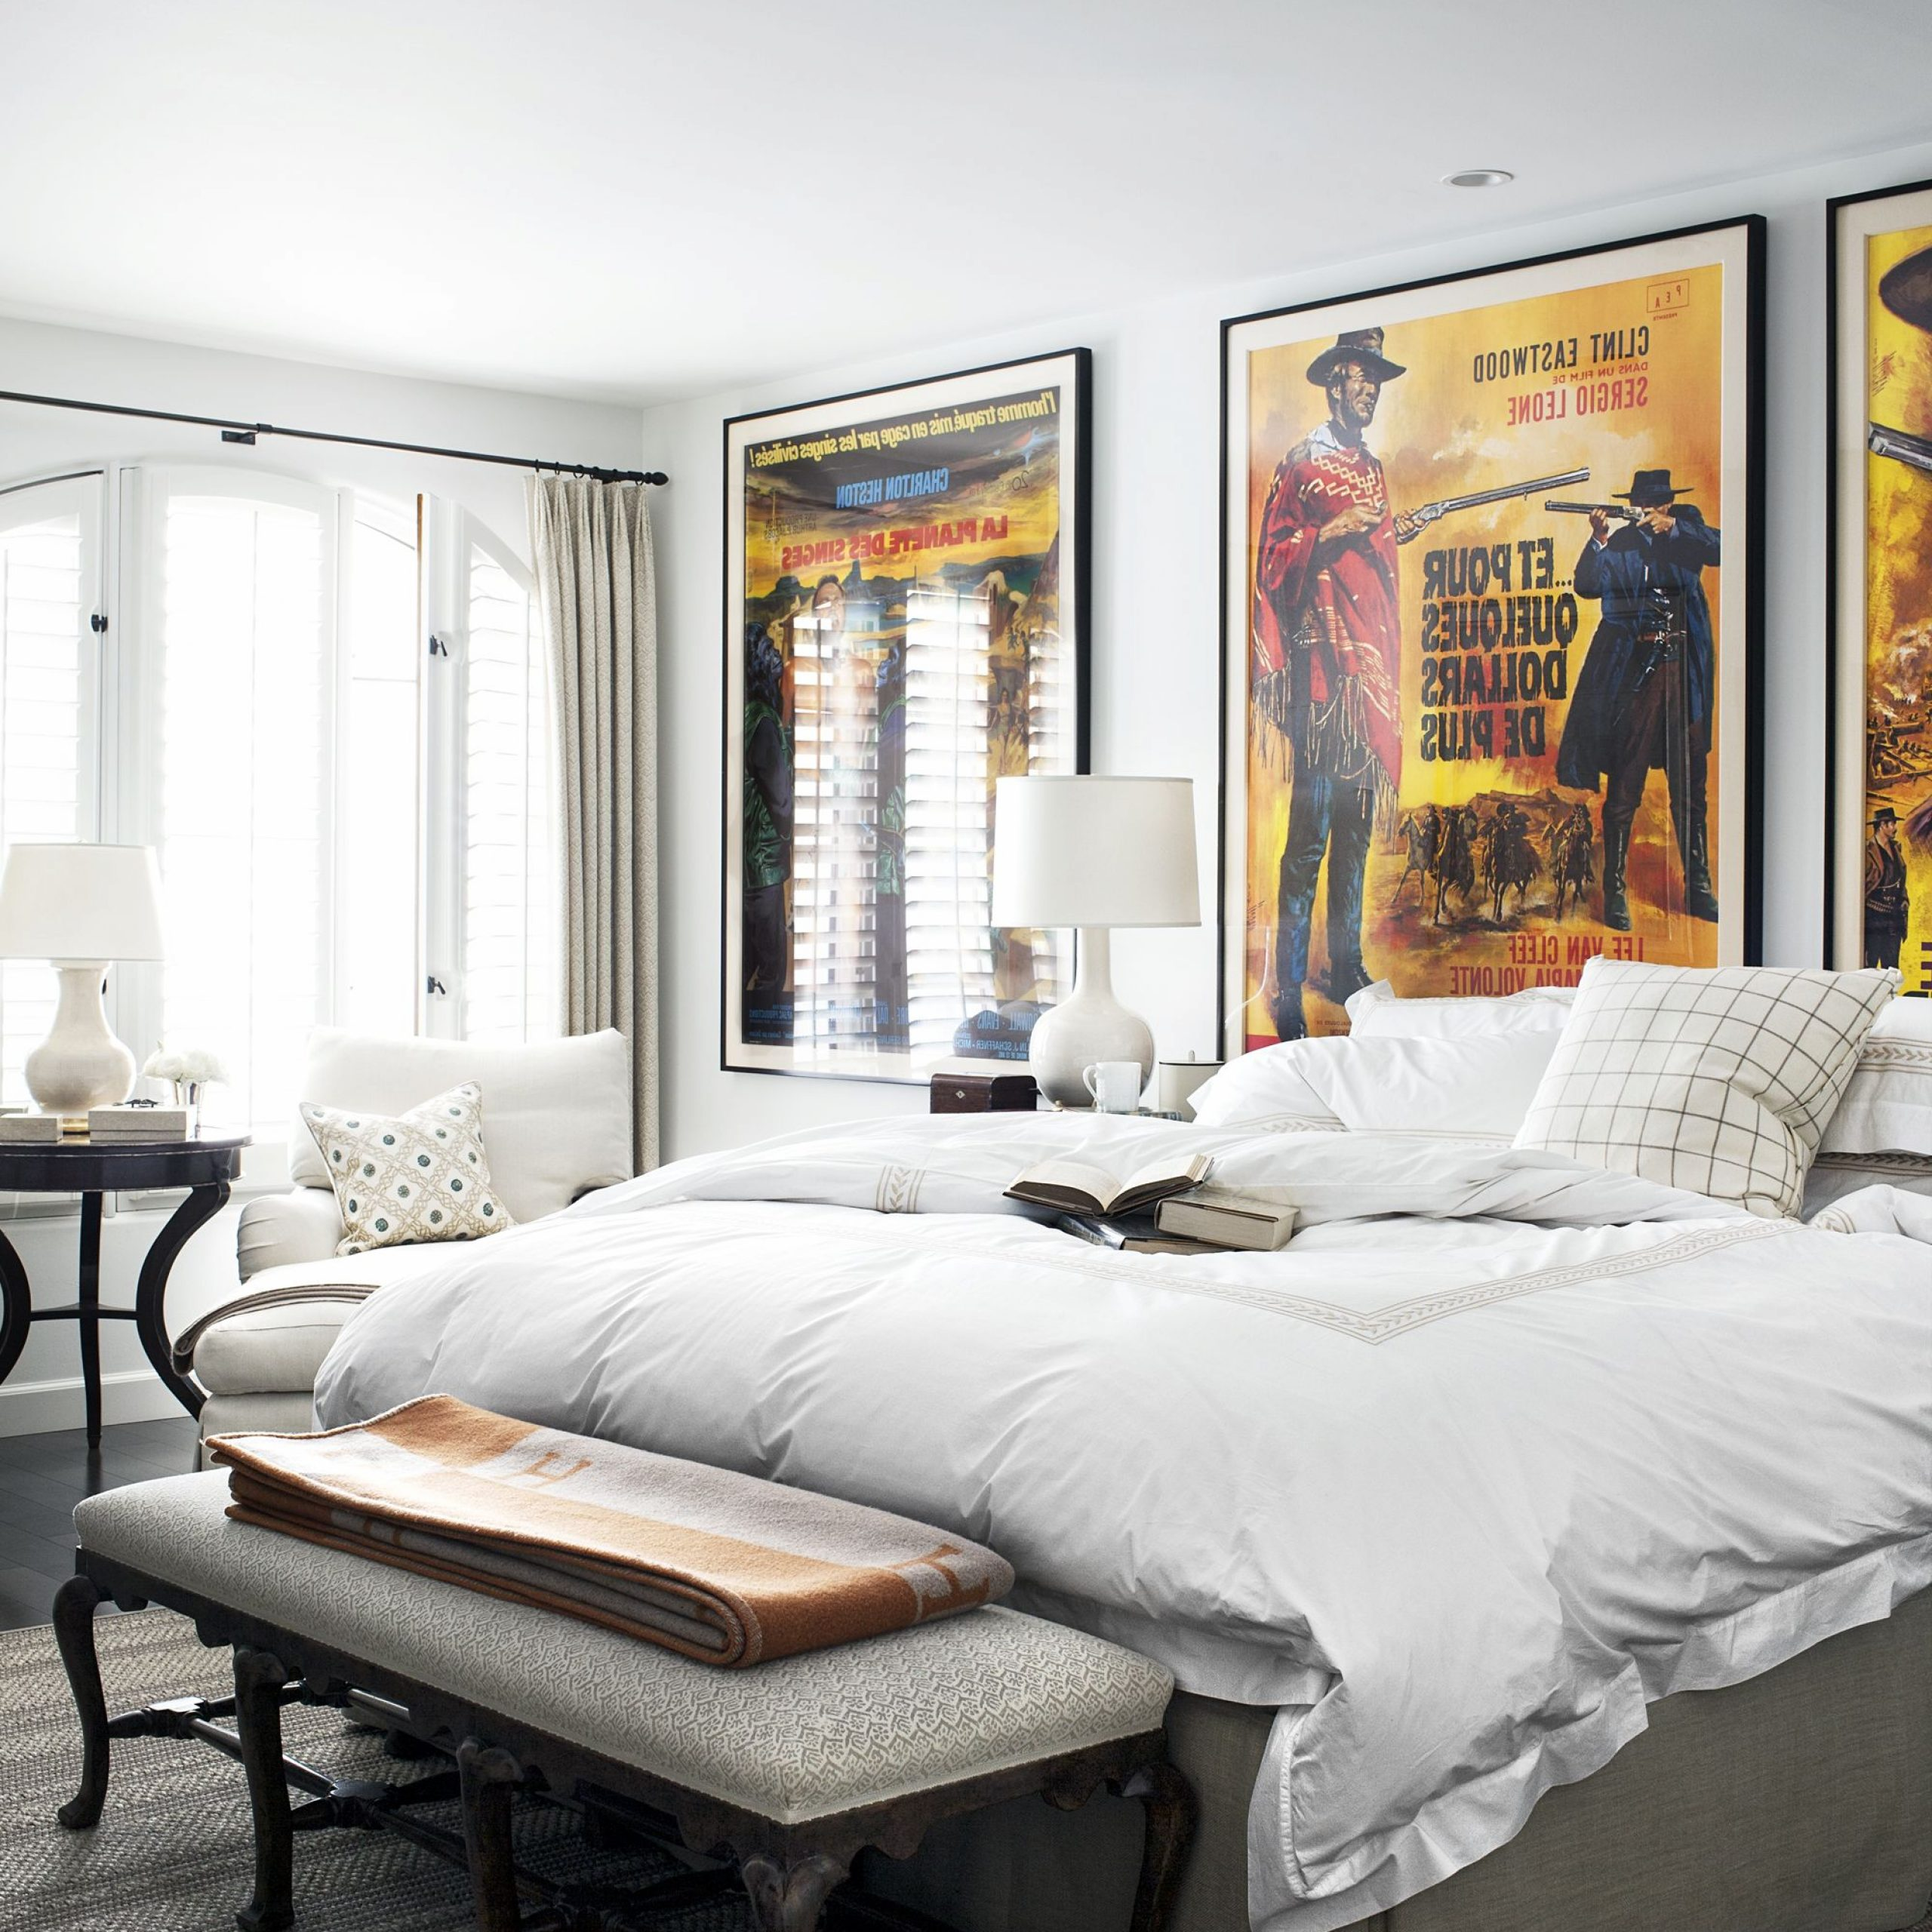 Metal Wall Décor By Charlton Home Within Latest 19 Best Bedroom Wall Decor Ideas In 2021 – Bedroom Wall (View 19 of 20)